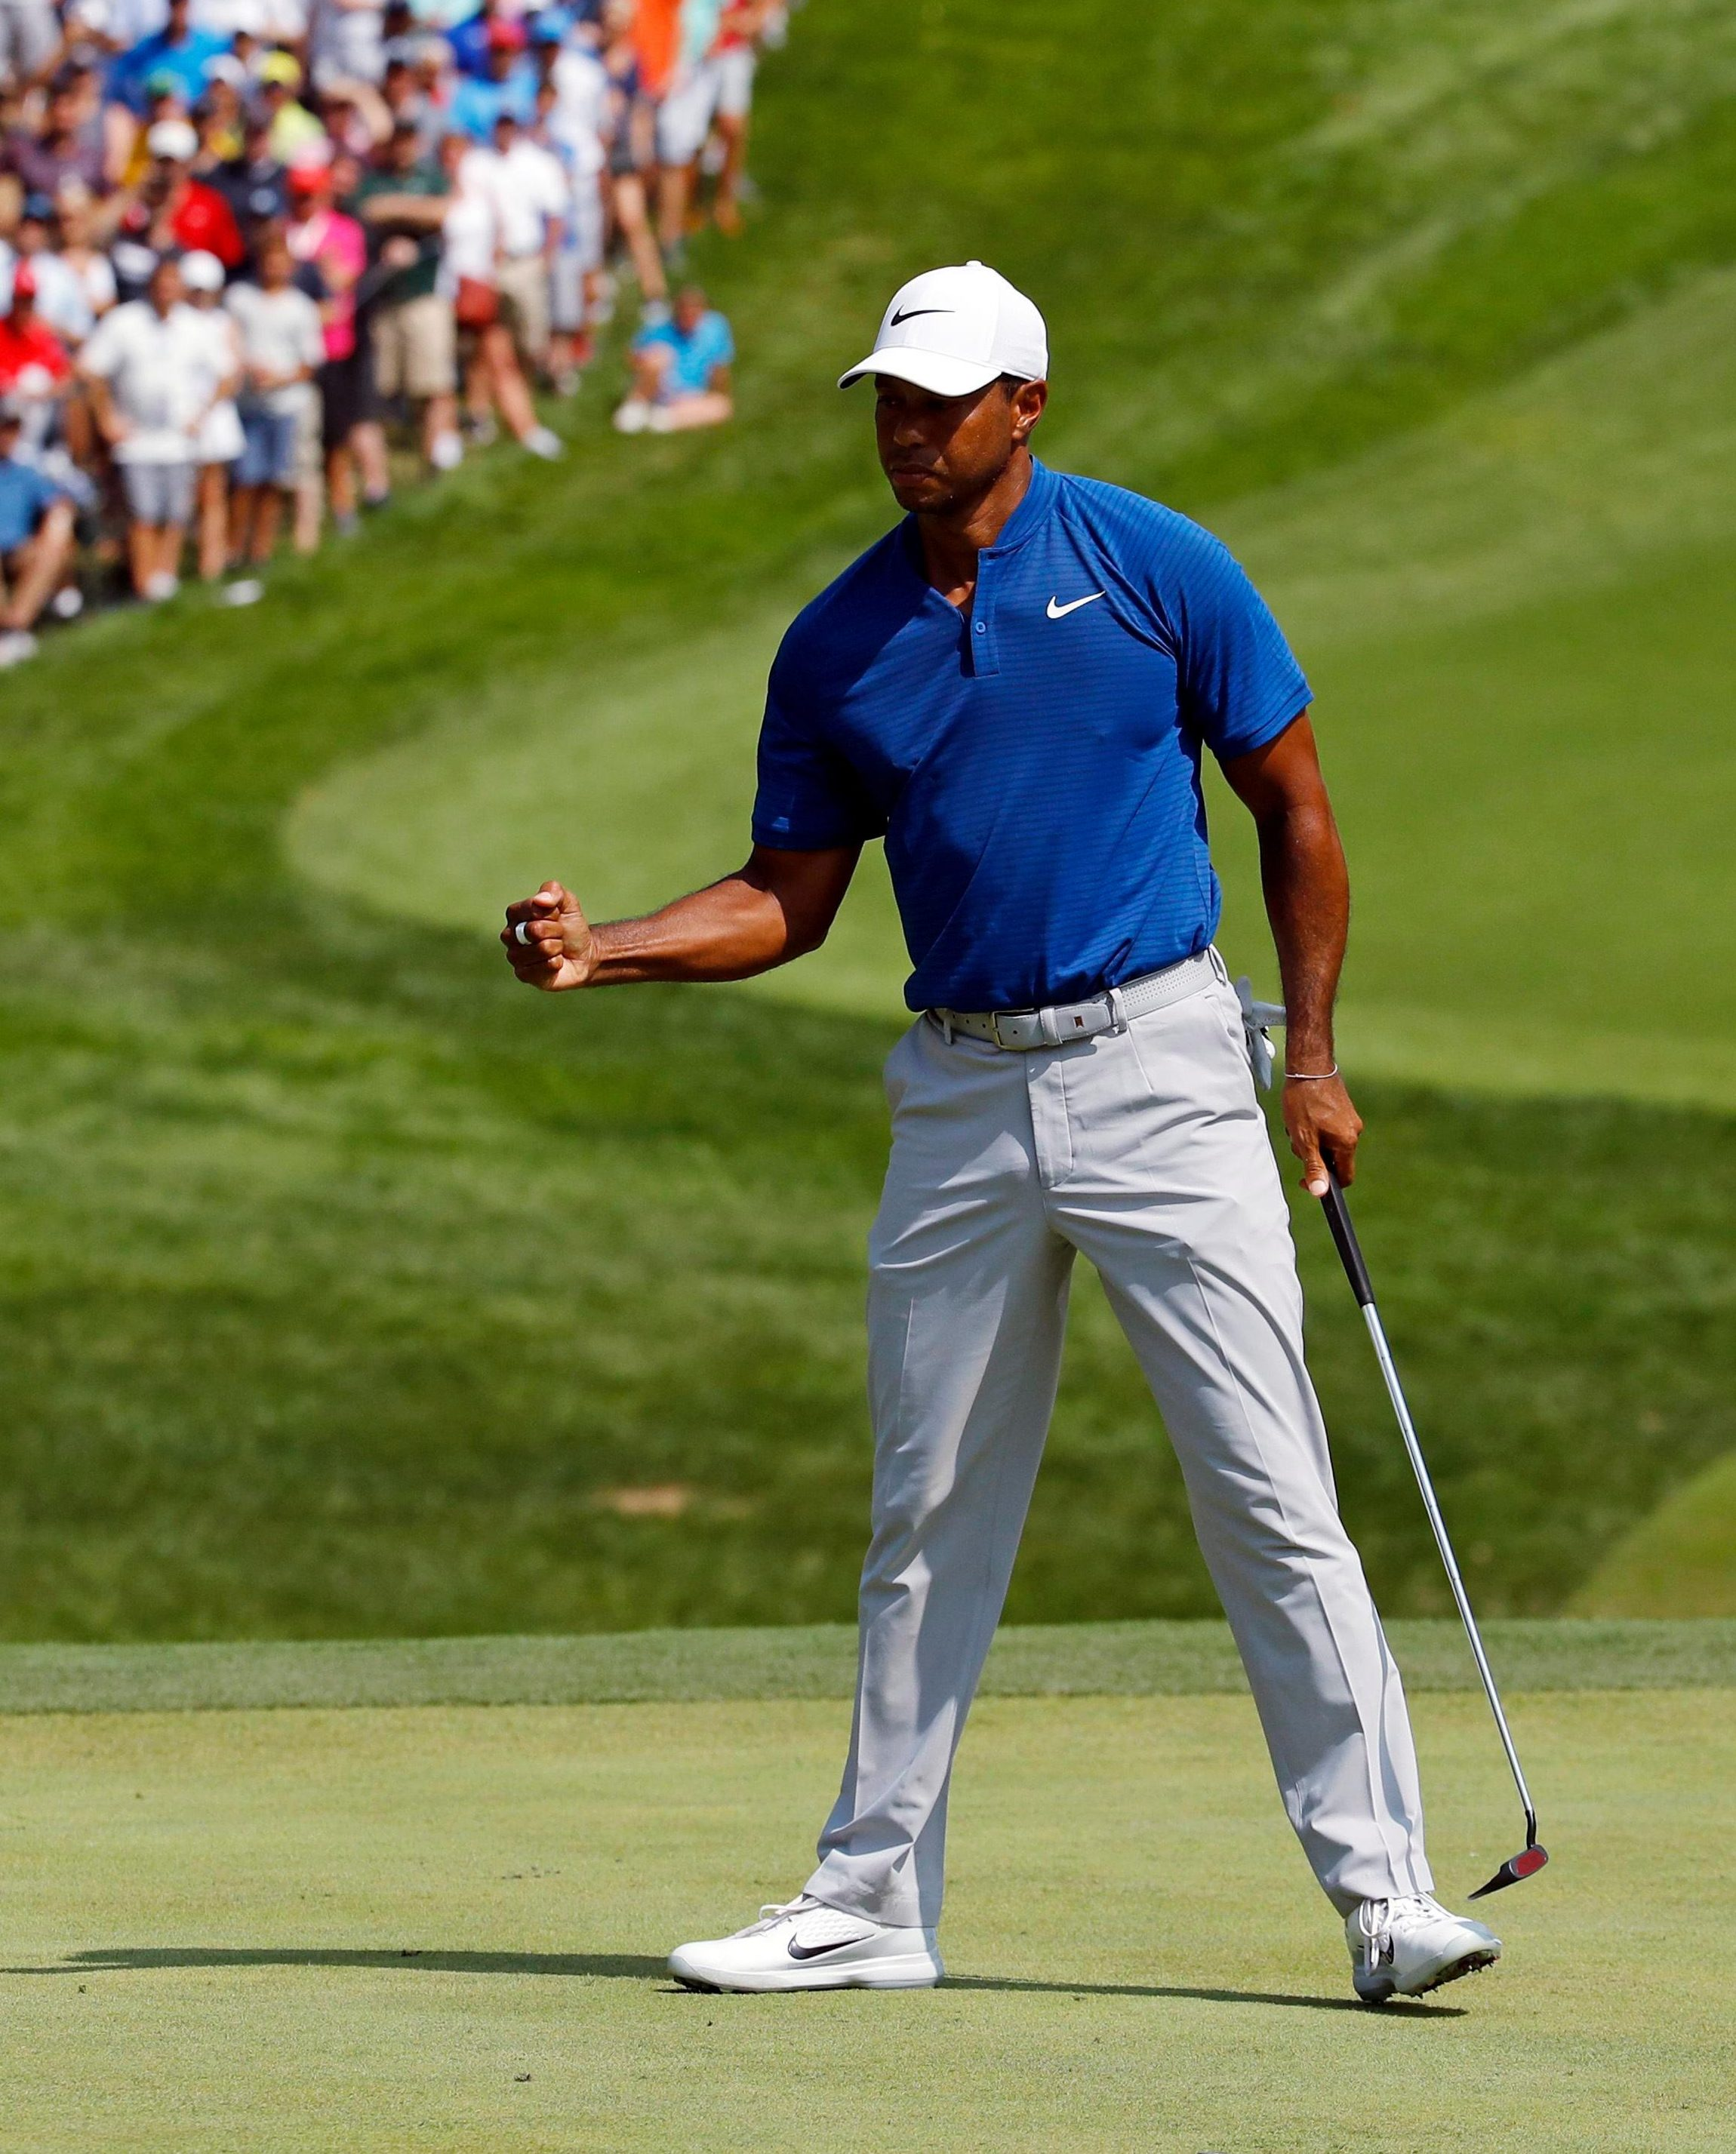 Tiger Woods got the crowds at Bellerive excited with his third round 66